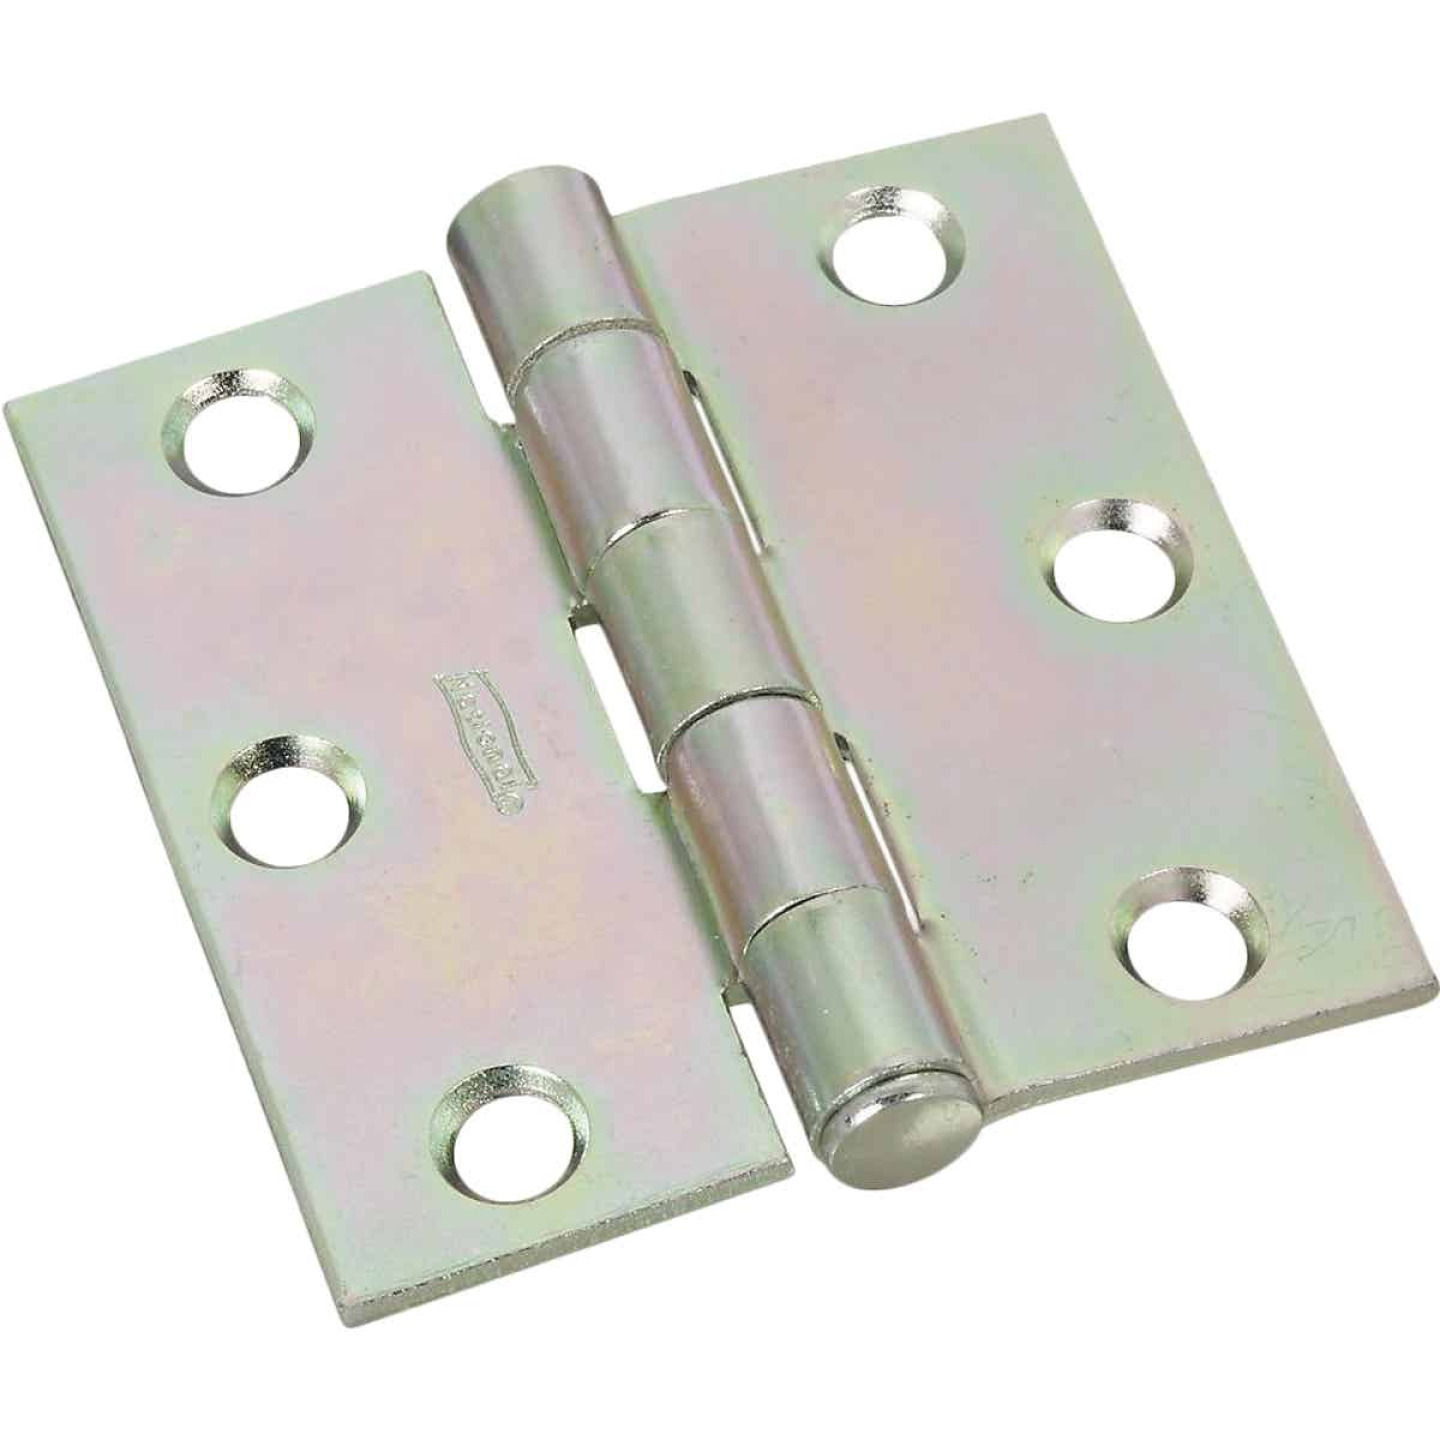 National 2-1/2 In. Zinc Removable Pin Broad Hinge Image 1